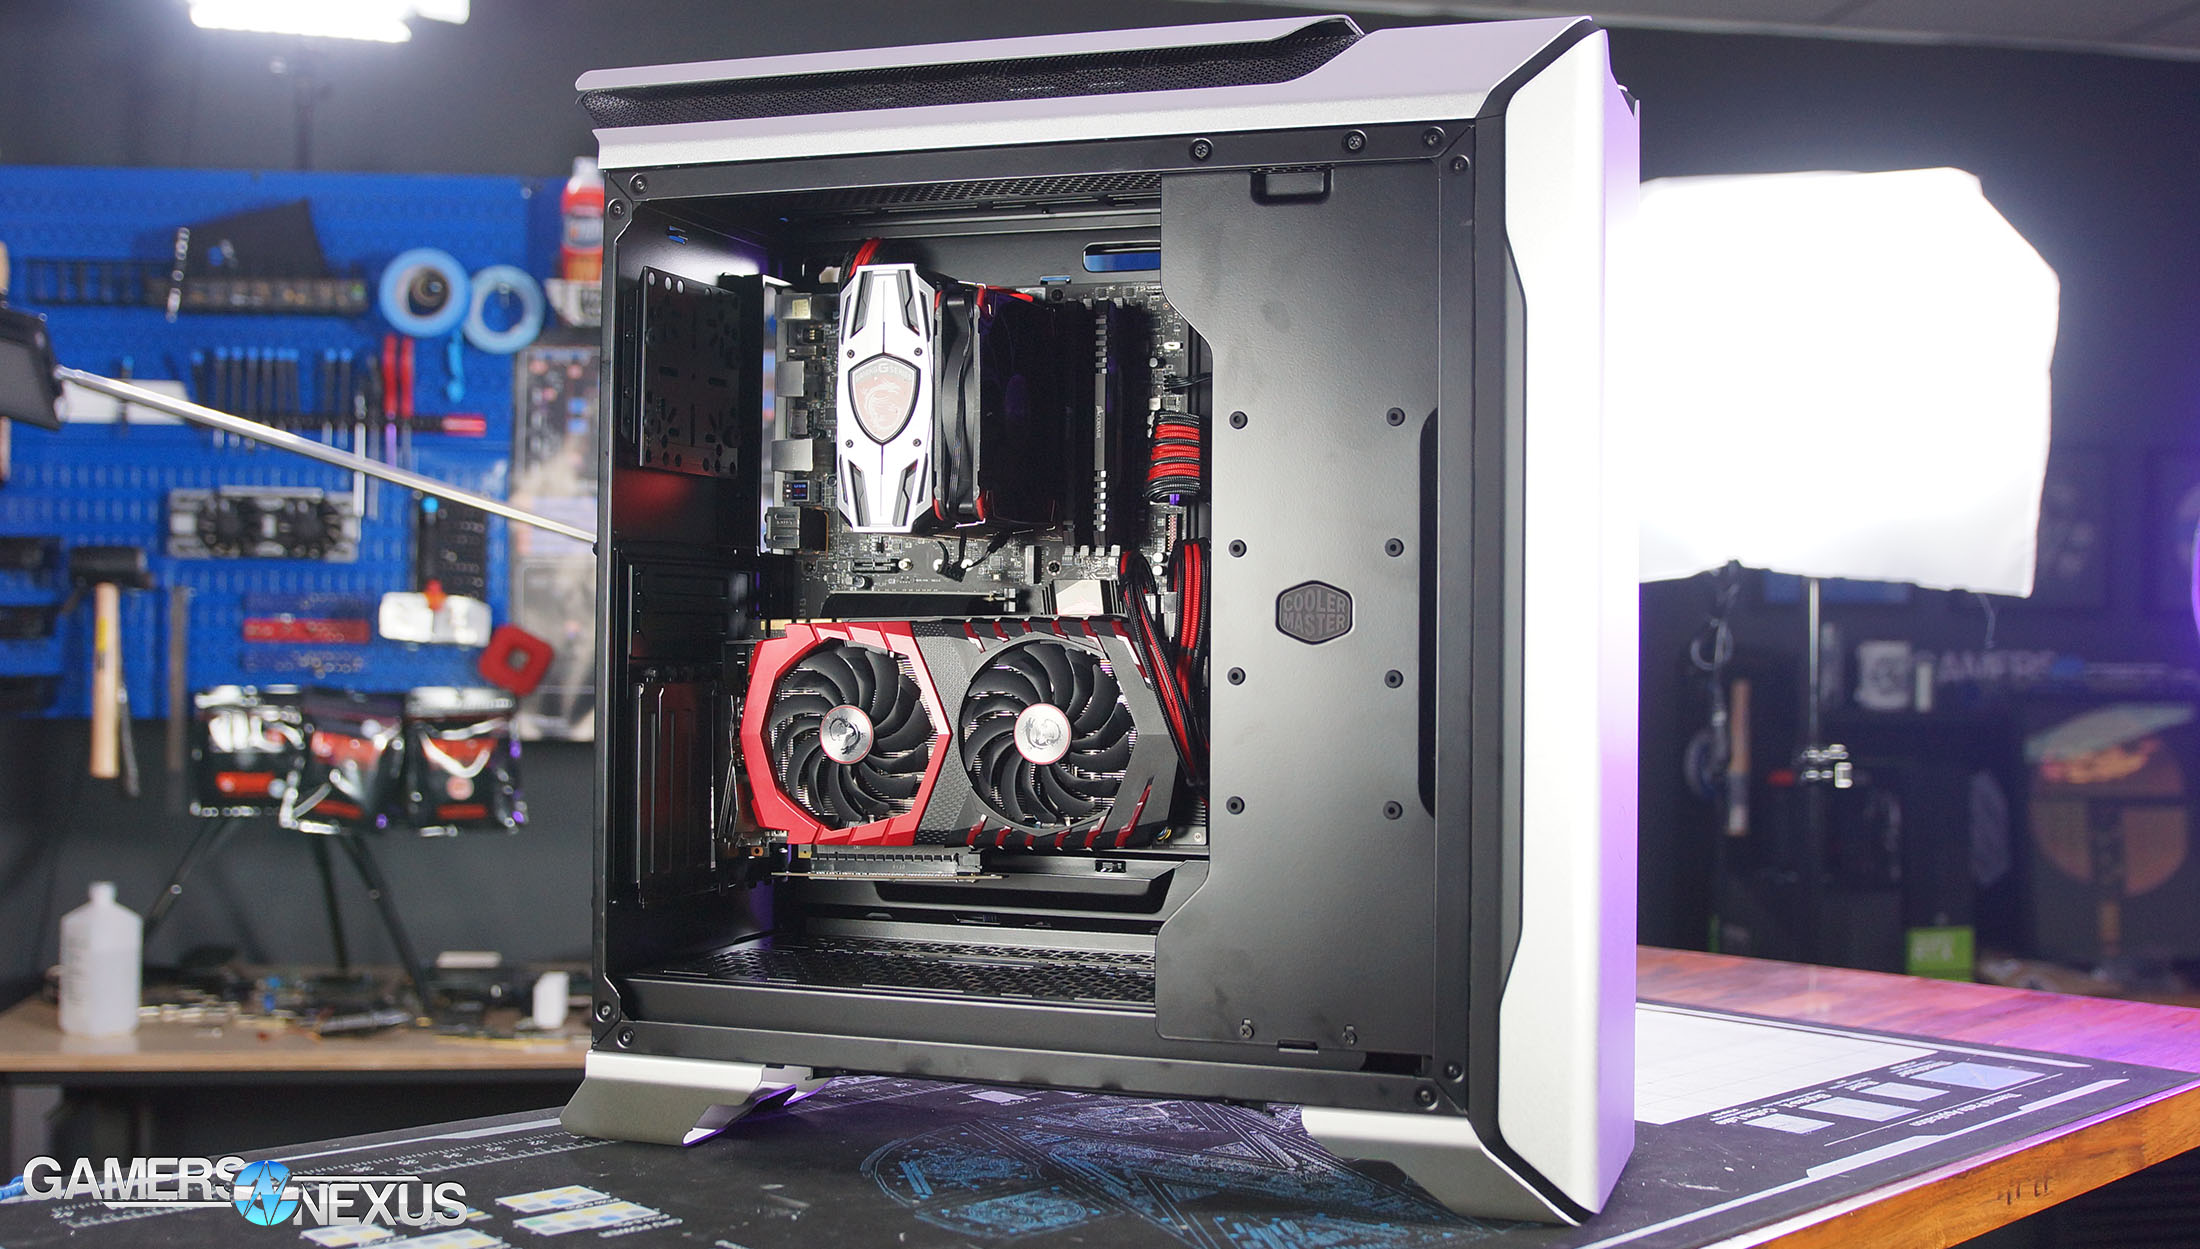 Cooler Master SL600M Review: Both the Best & Worst in